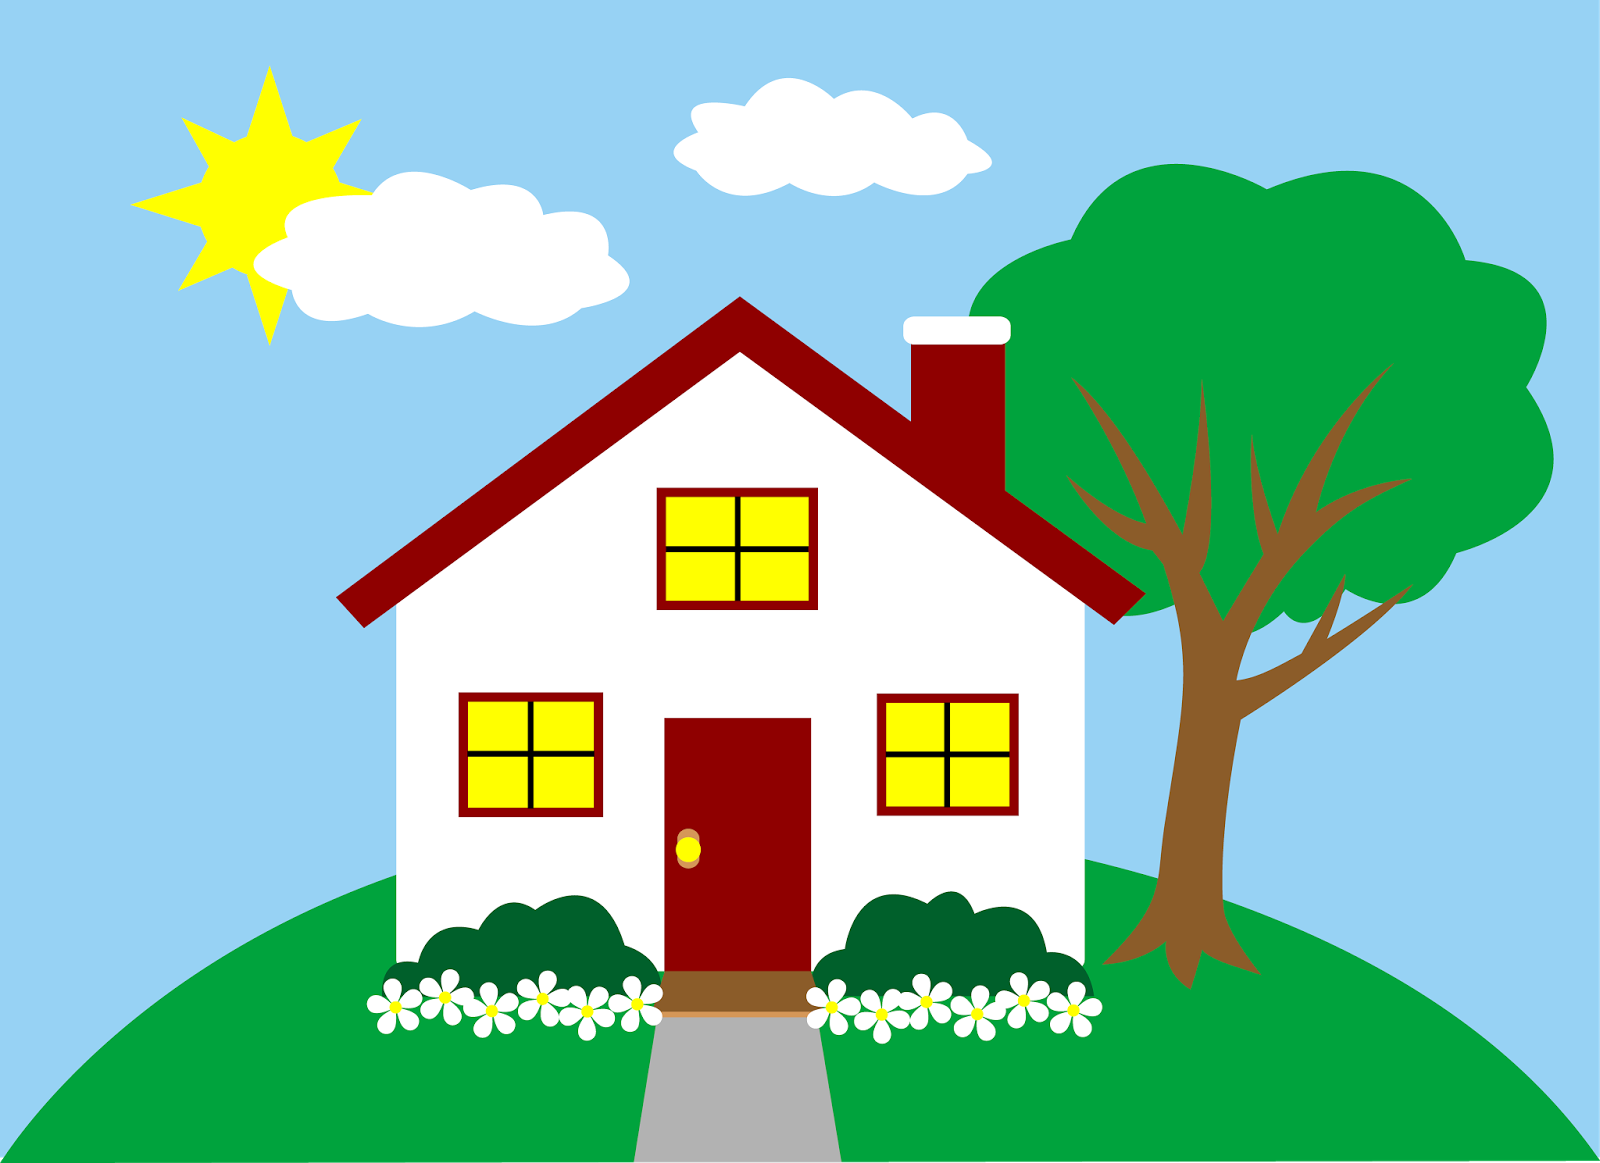 House Free Vector